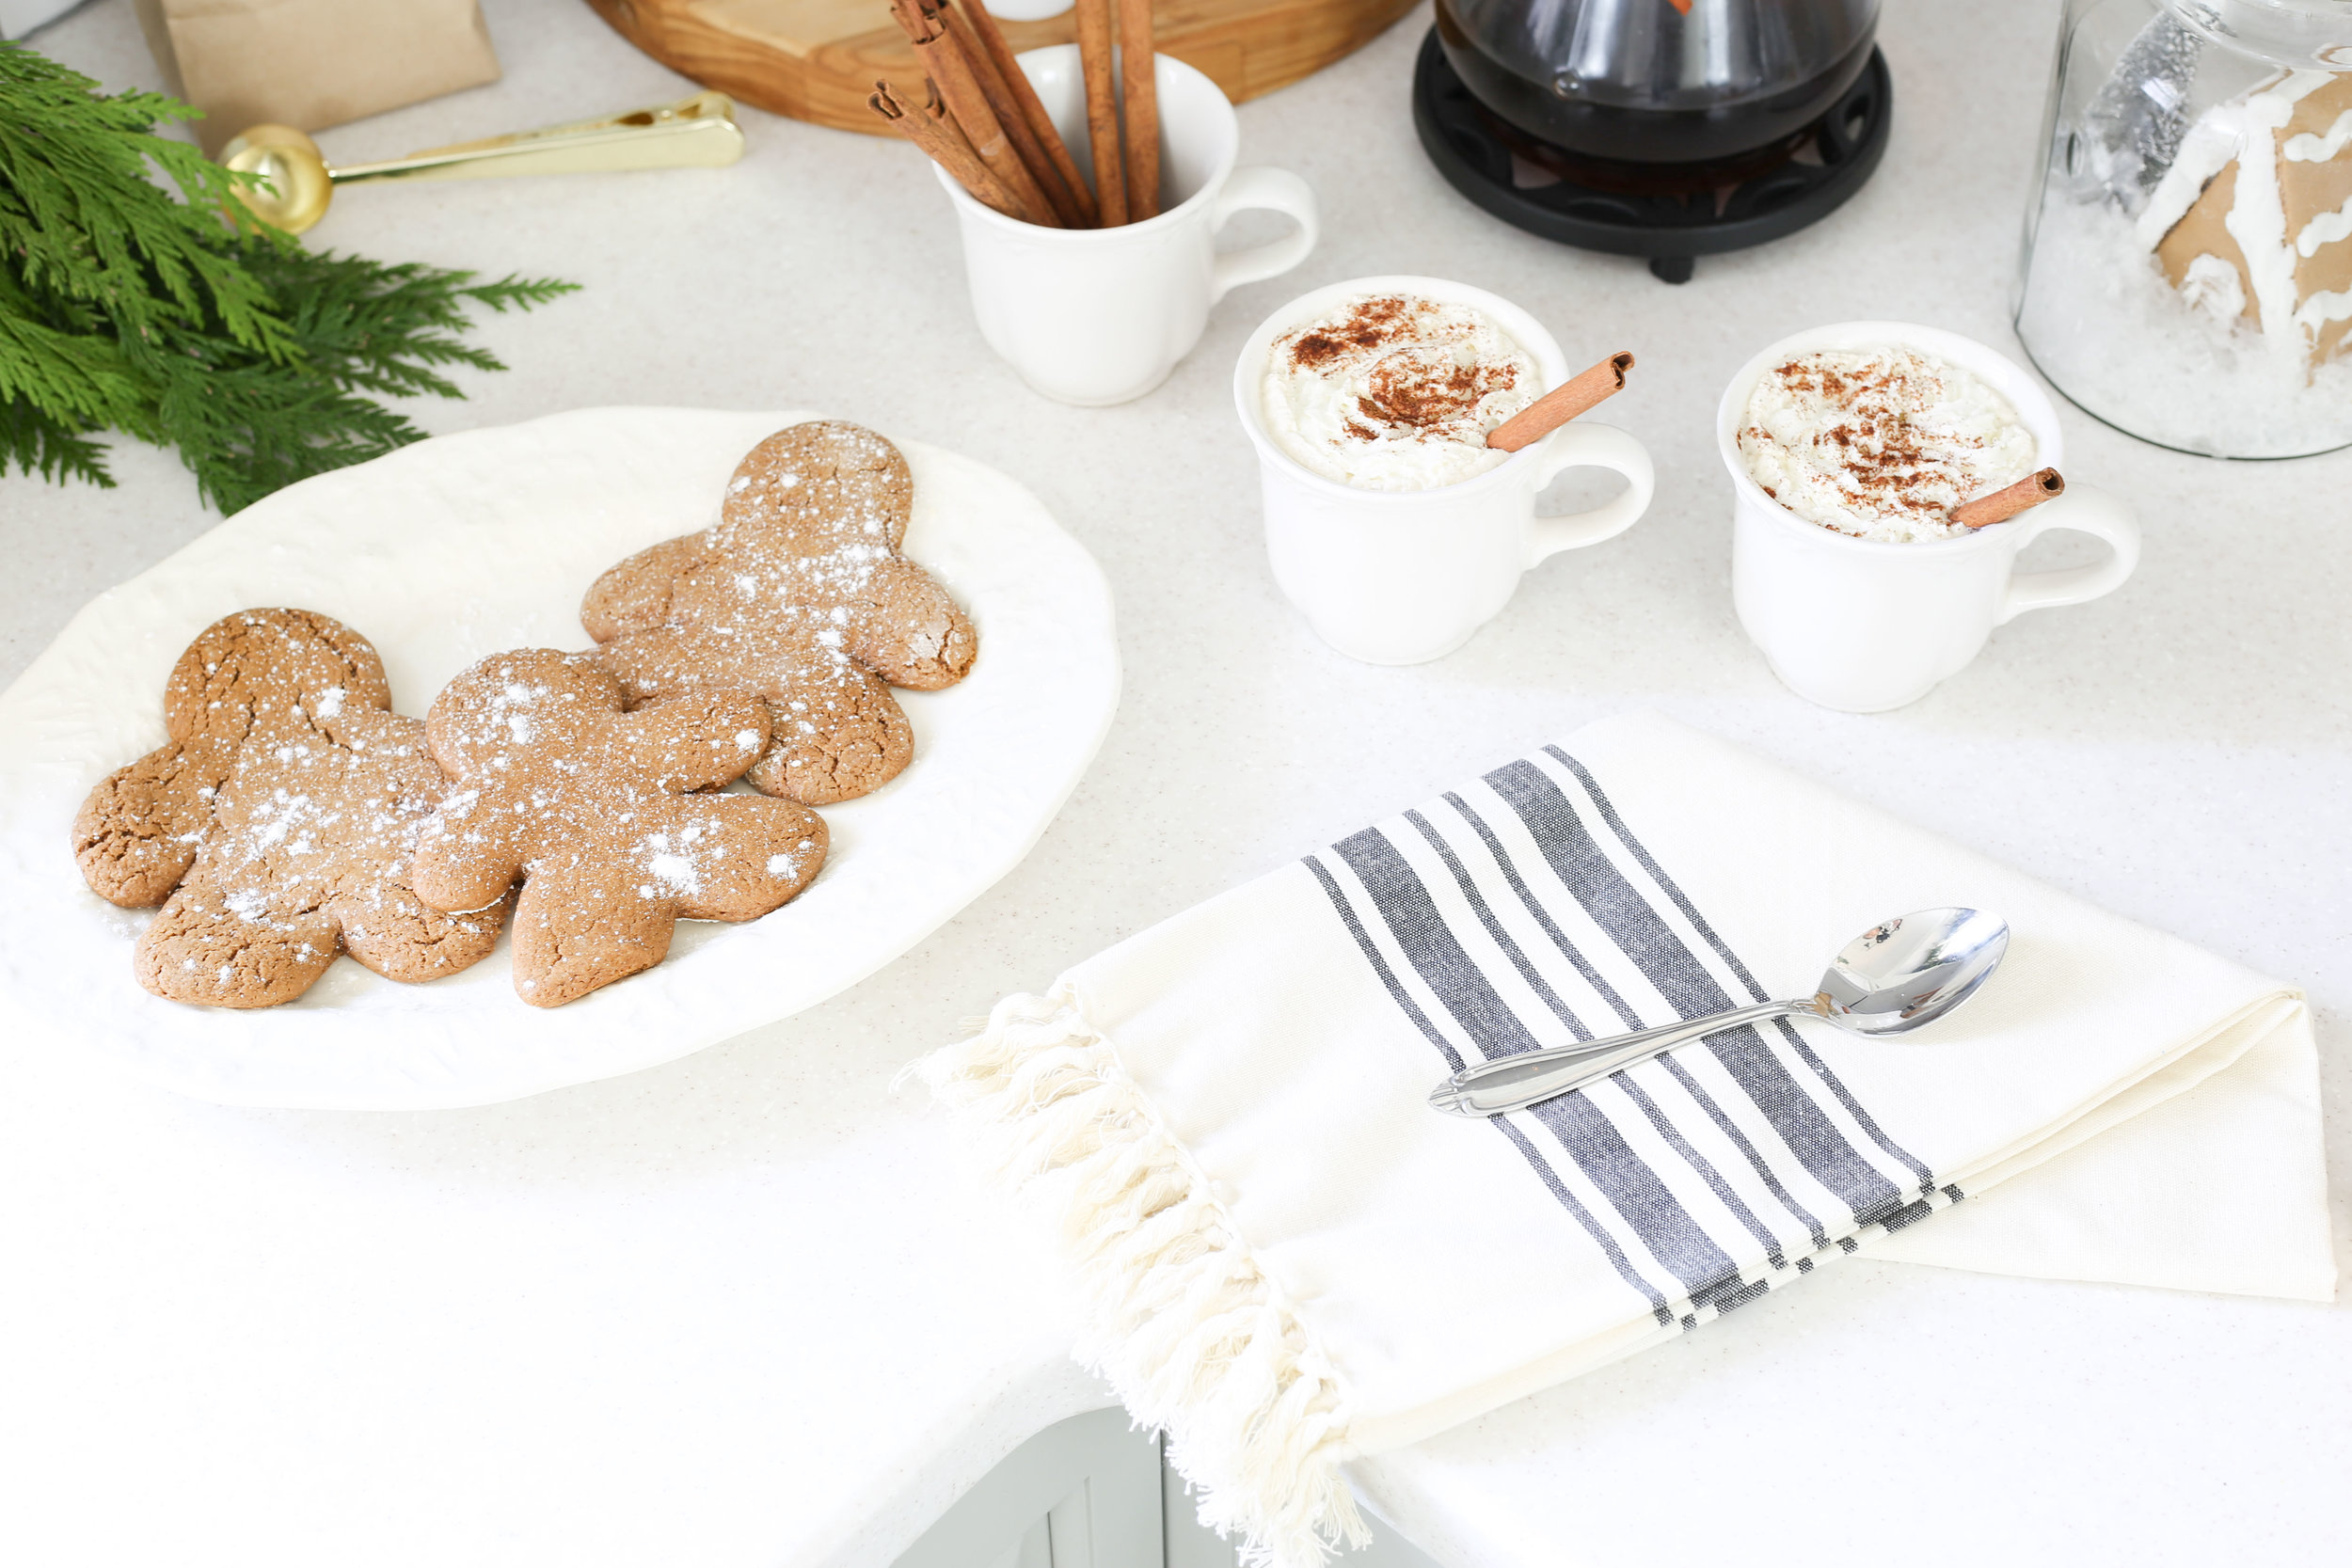 Christmas 2017 Home Tour: Deck The Blogs-Kitchen Decor with Cookies and Coffee- Plum Pretty Decor & Design's Christmas Home Tour